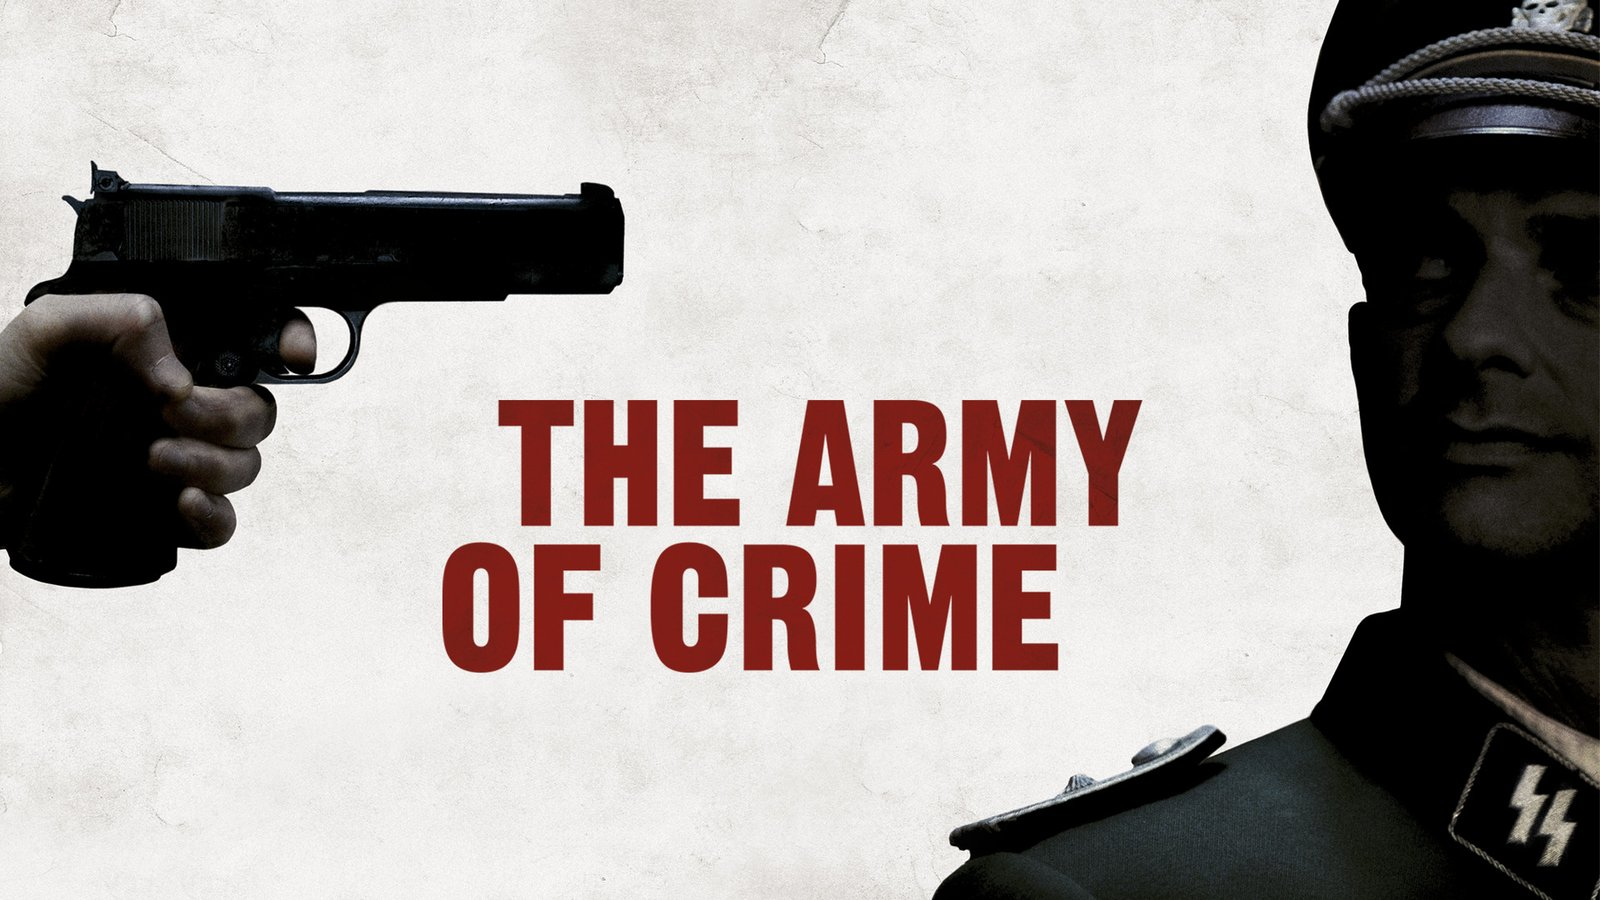 The Army of Crime